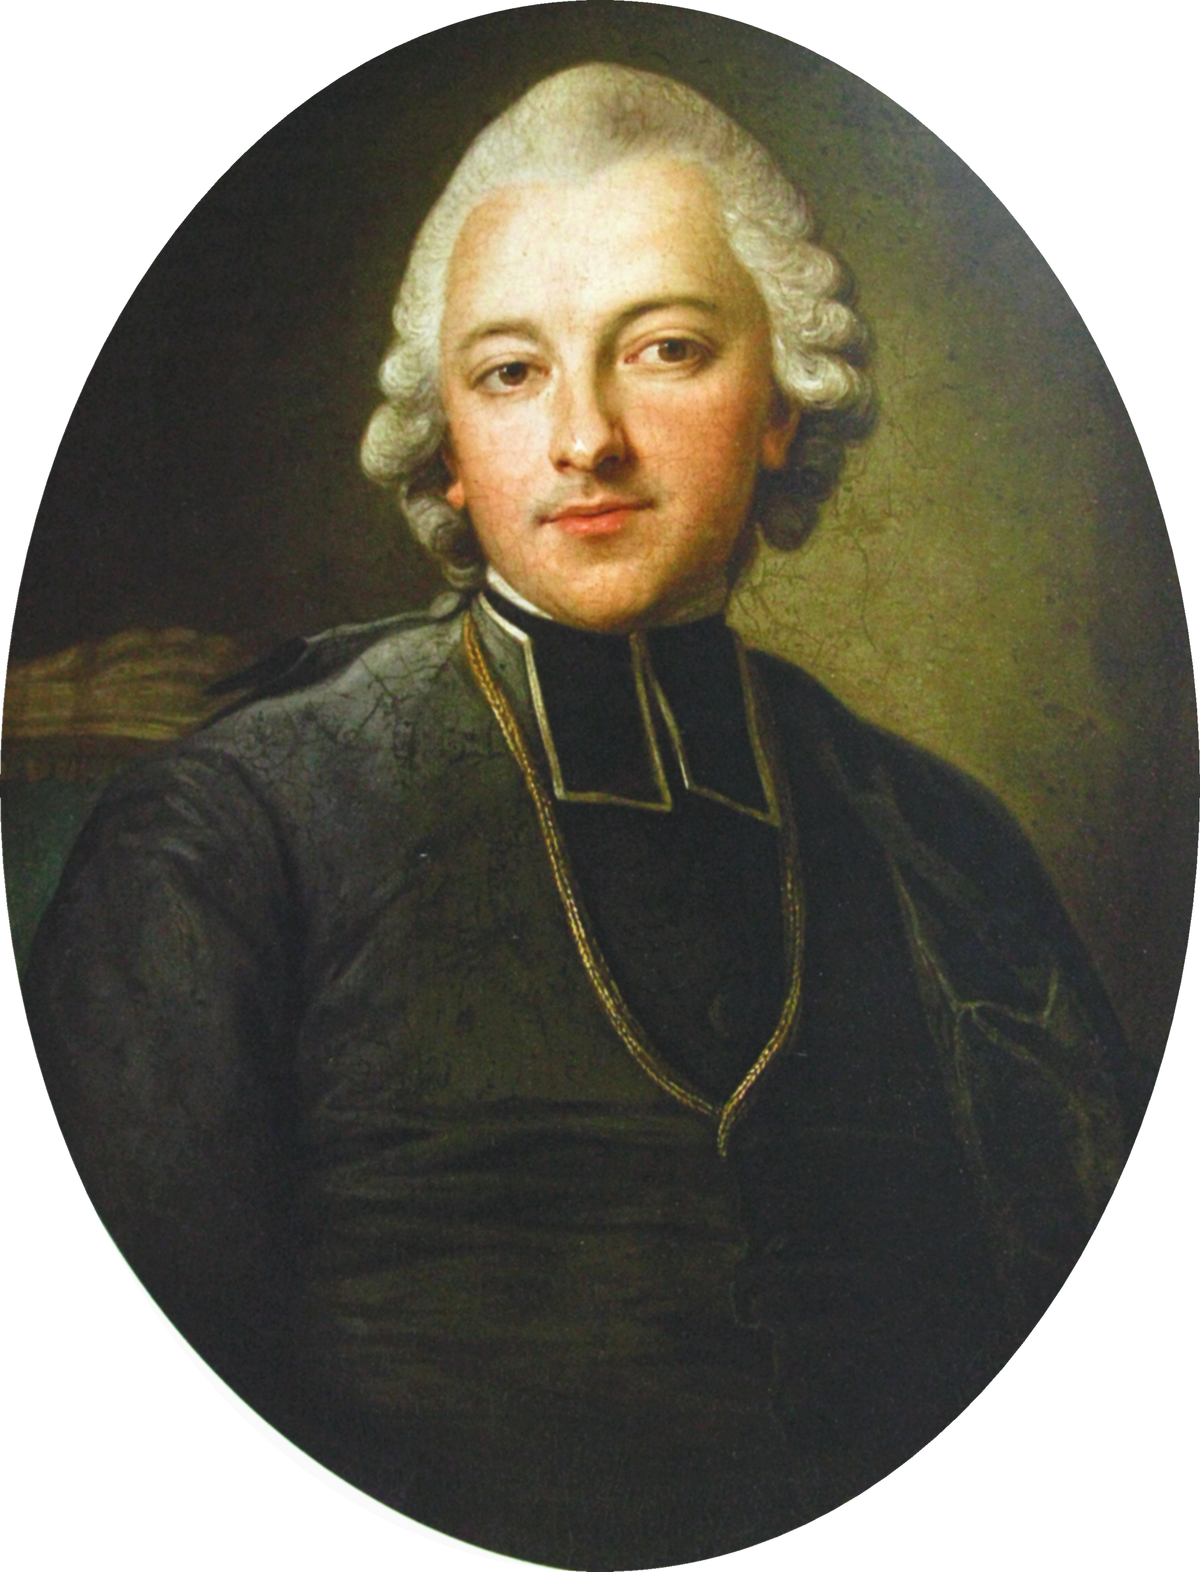 voltaire personals Voltaire was 39 when, in 1733 authors of the bestselling dating book that meghan 'knew by heart' reveal how she snared her prince by 'playing it cool.